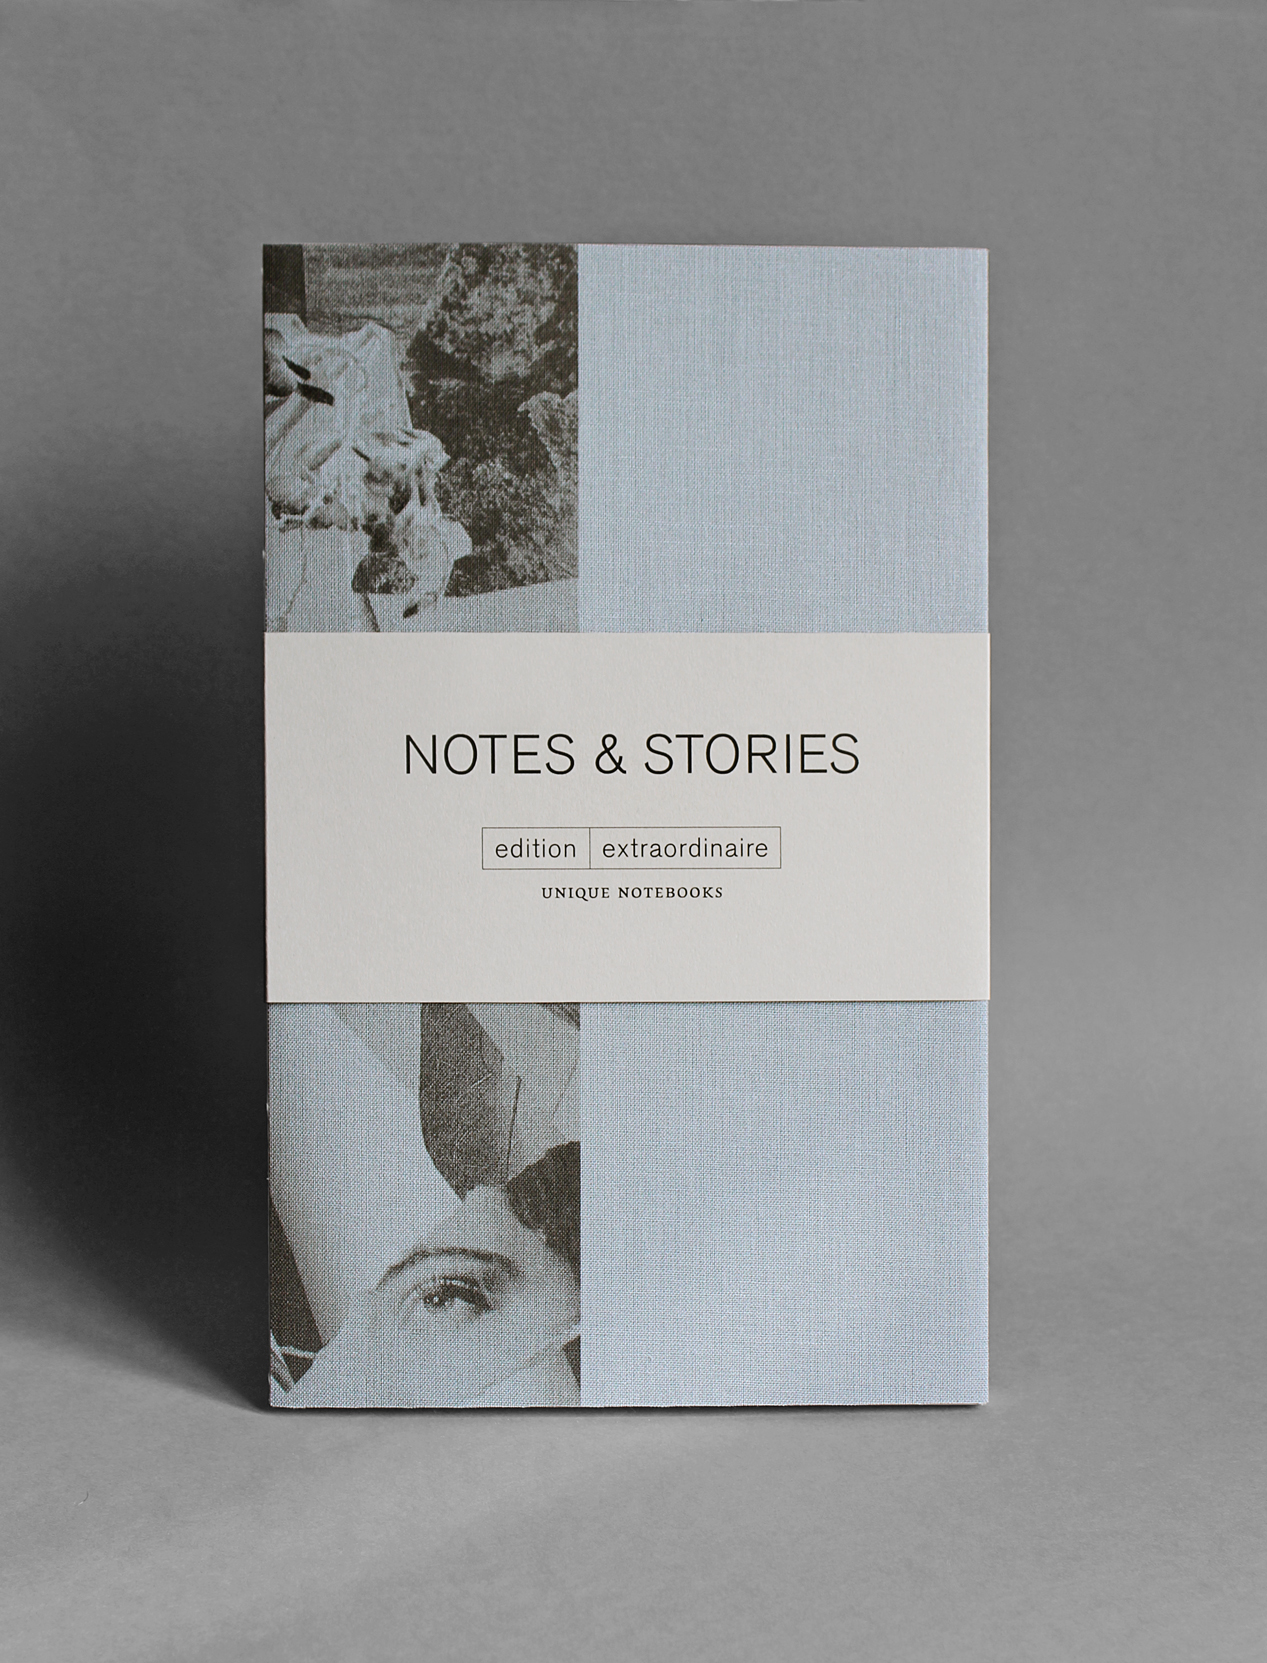 NOTES & STORIES - each notebook is a unique, hand-bound and printed book